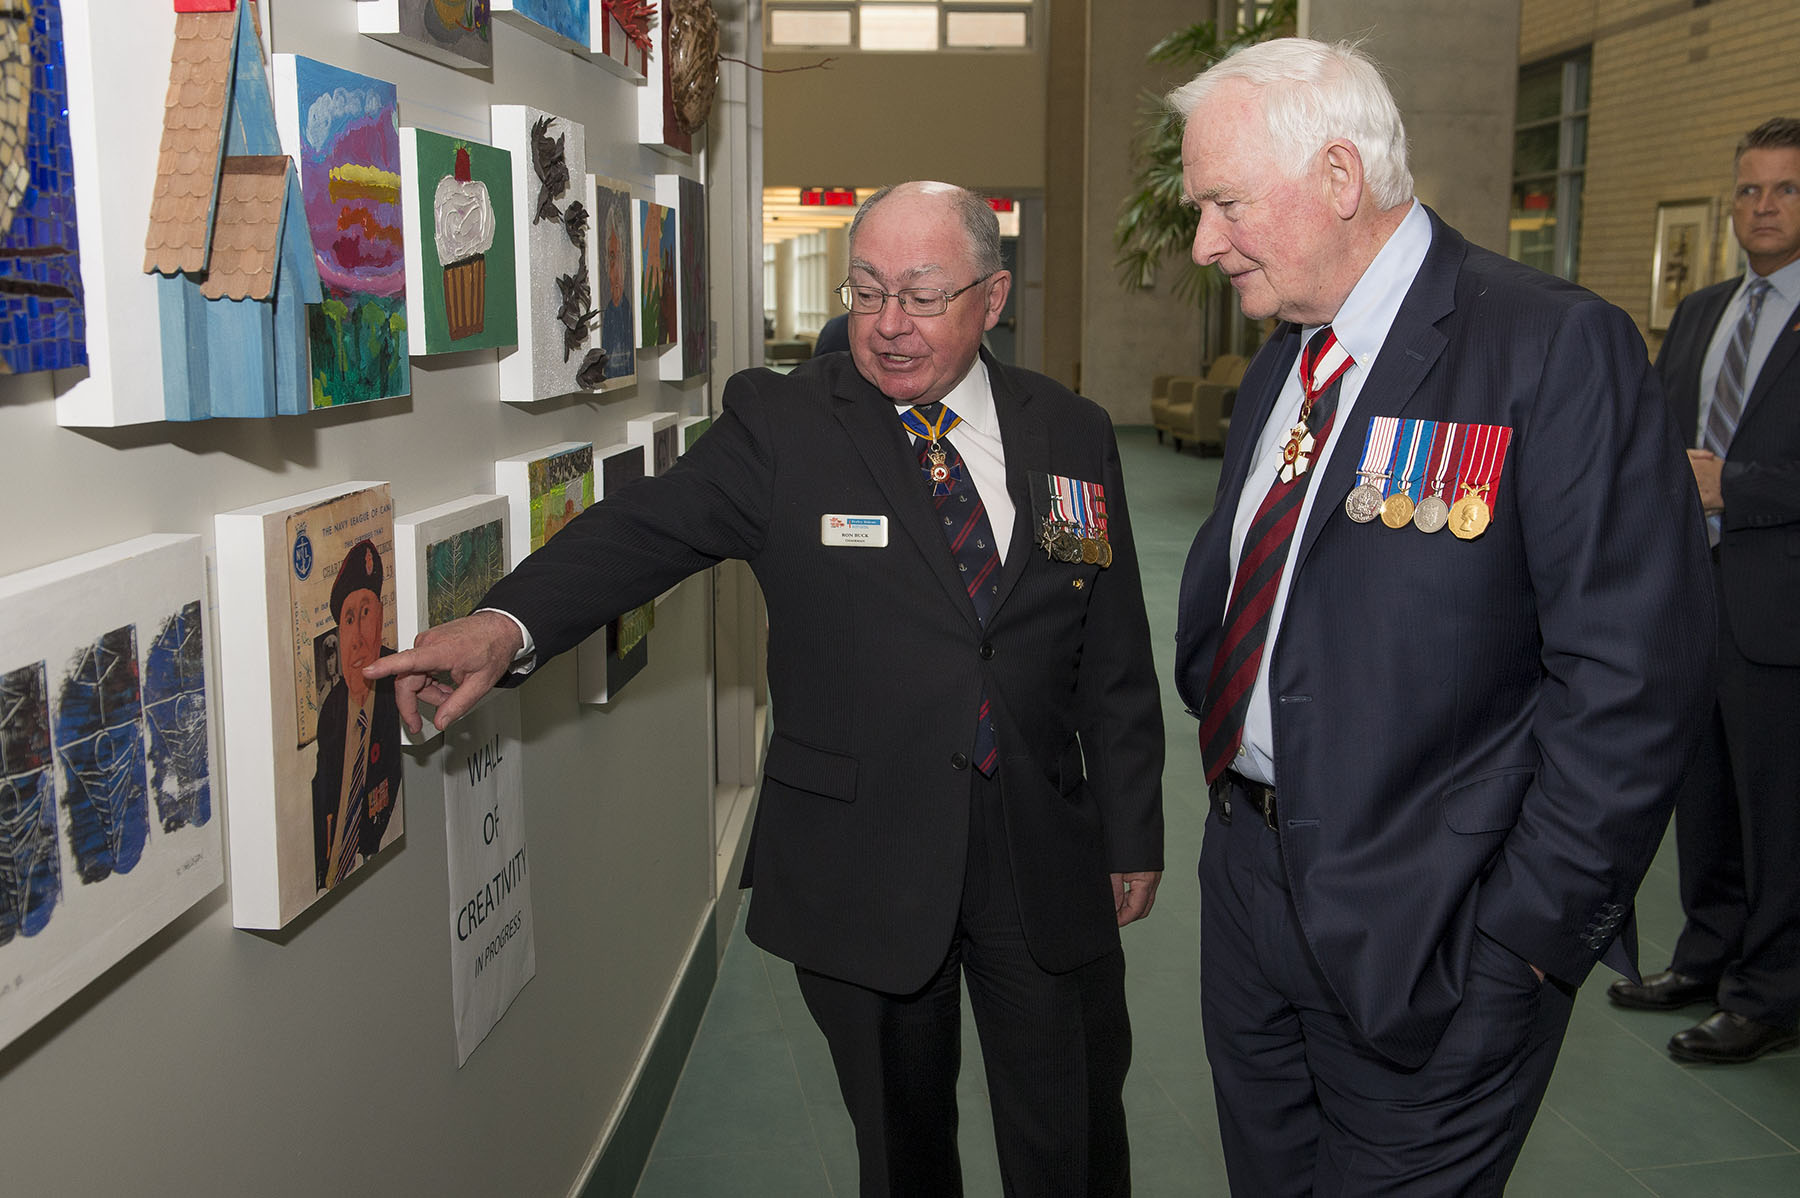 The Governor General admired some artwork created by residents of the Perley and Rideau Veterans' Health Centre.